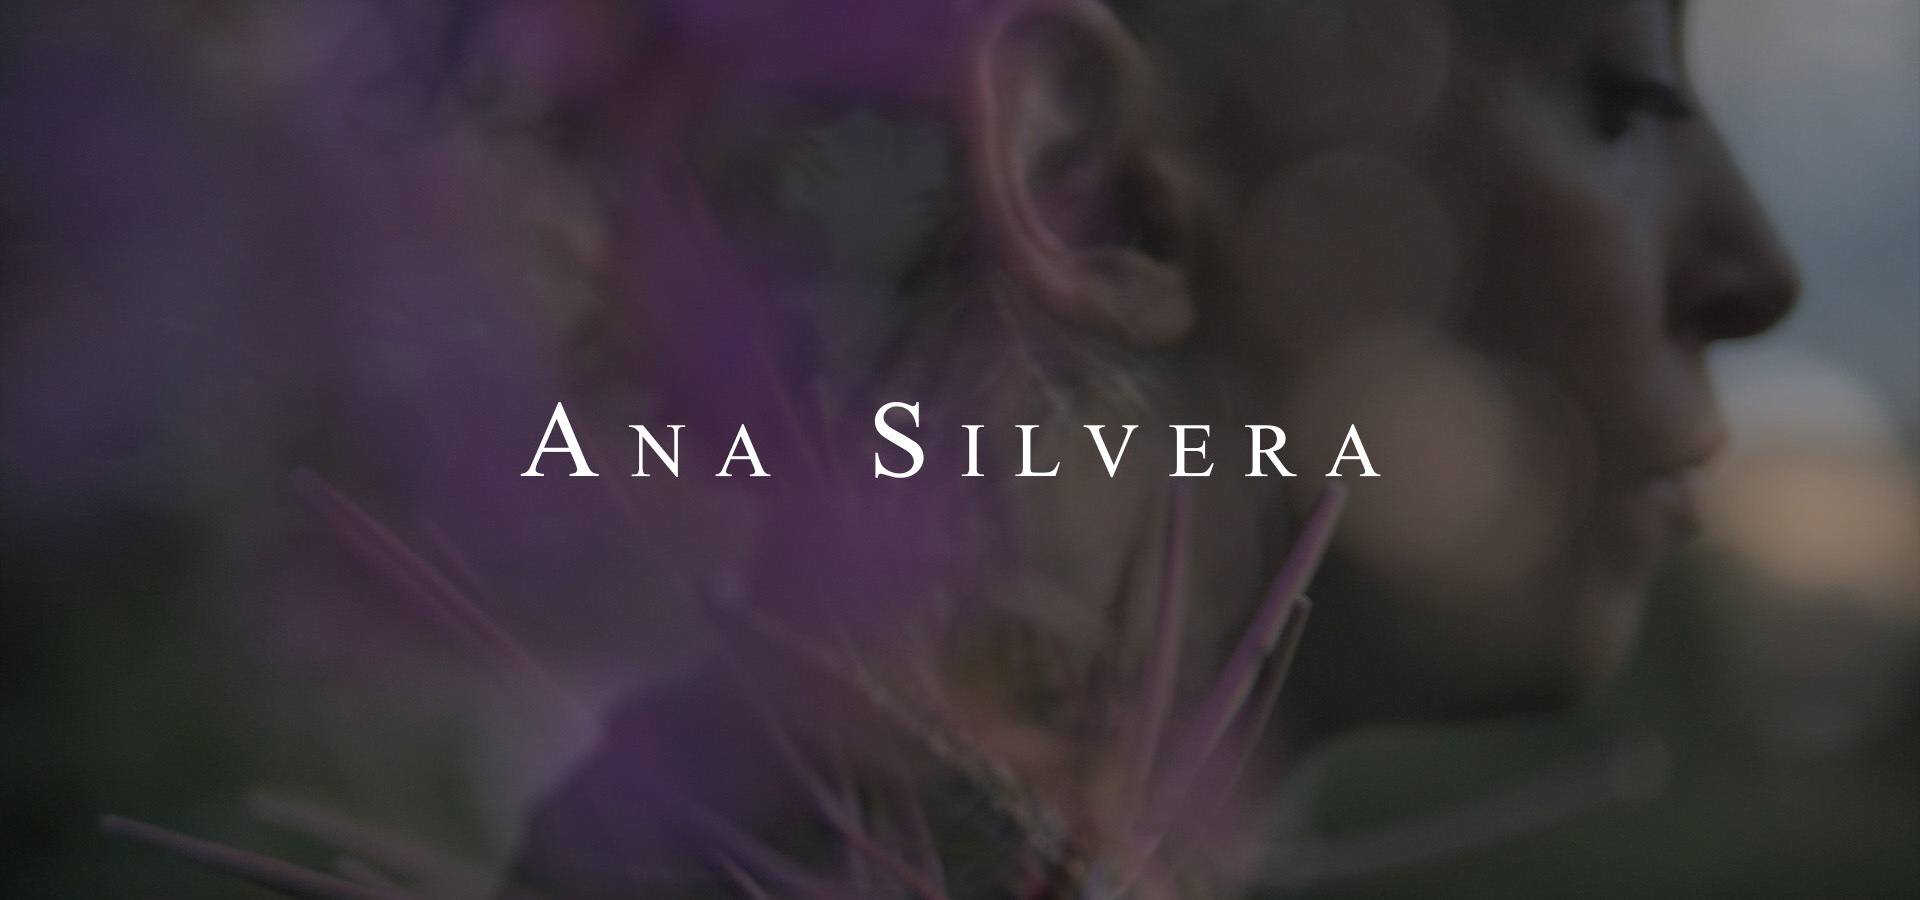 "<a href=""http://www.moensessions.com/2017/09/30/ana-silvera/"">.</a>"